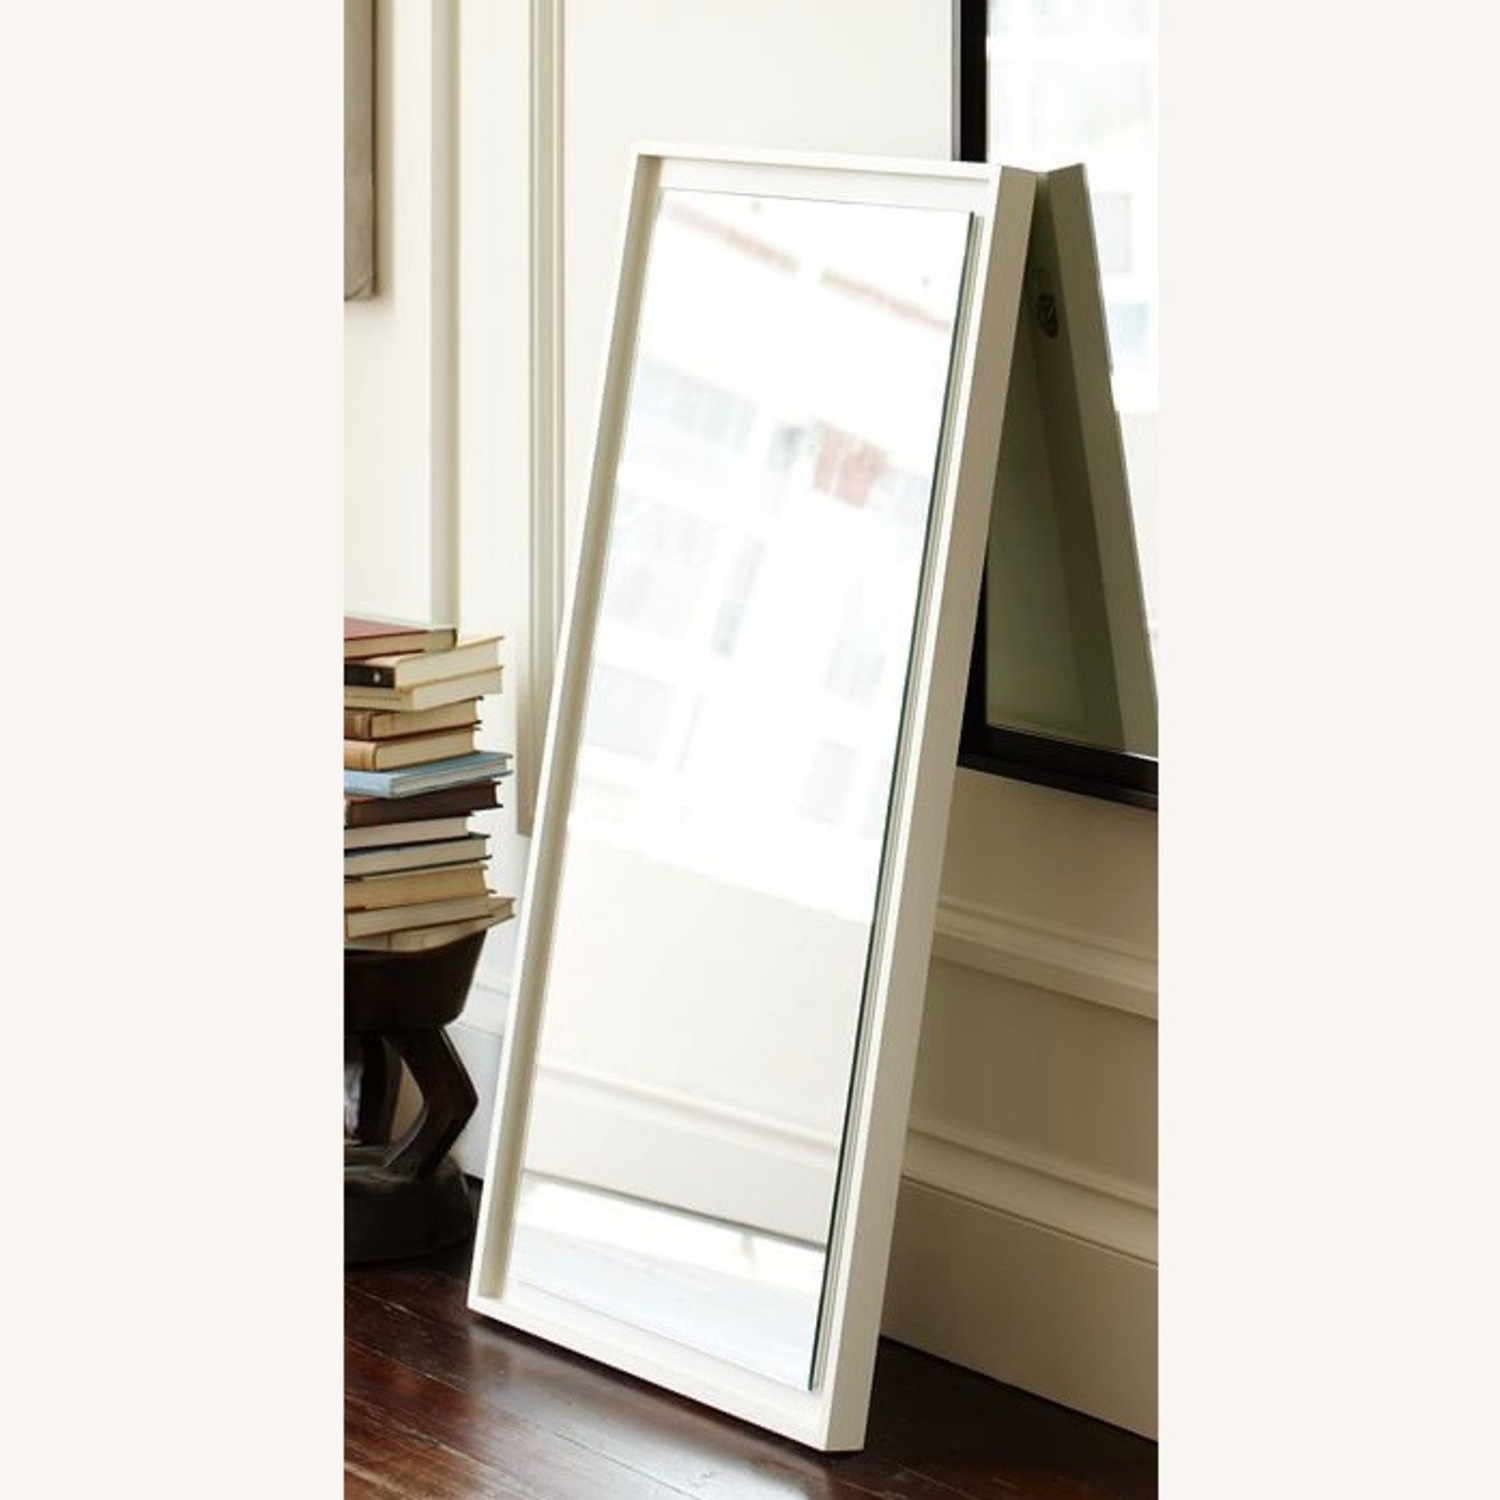 West Elm Small Floating Wood Wall Mirror - image-1